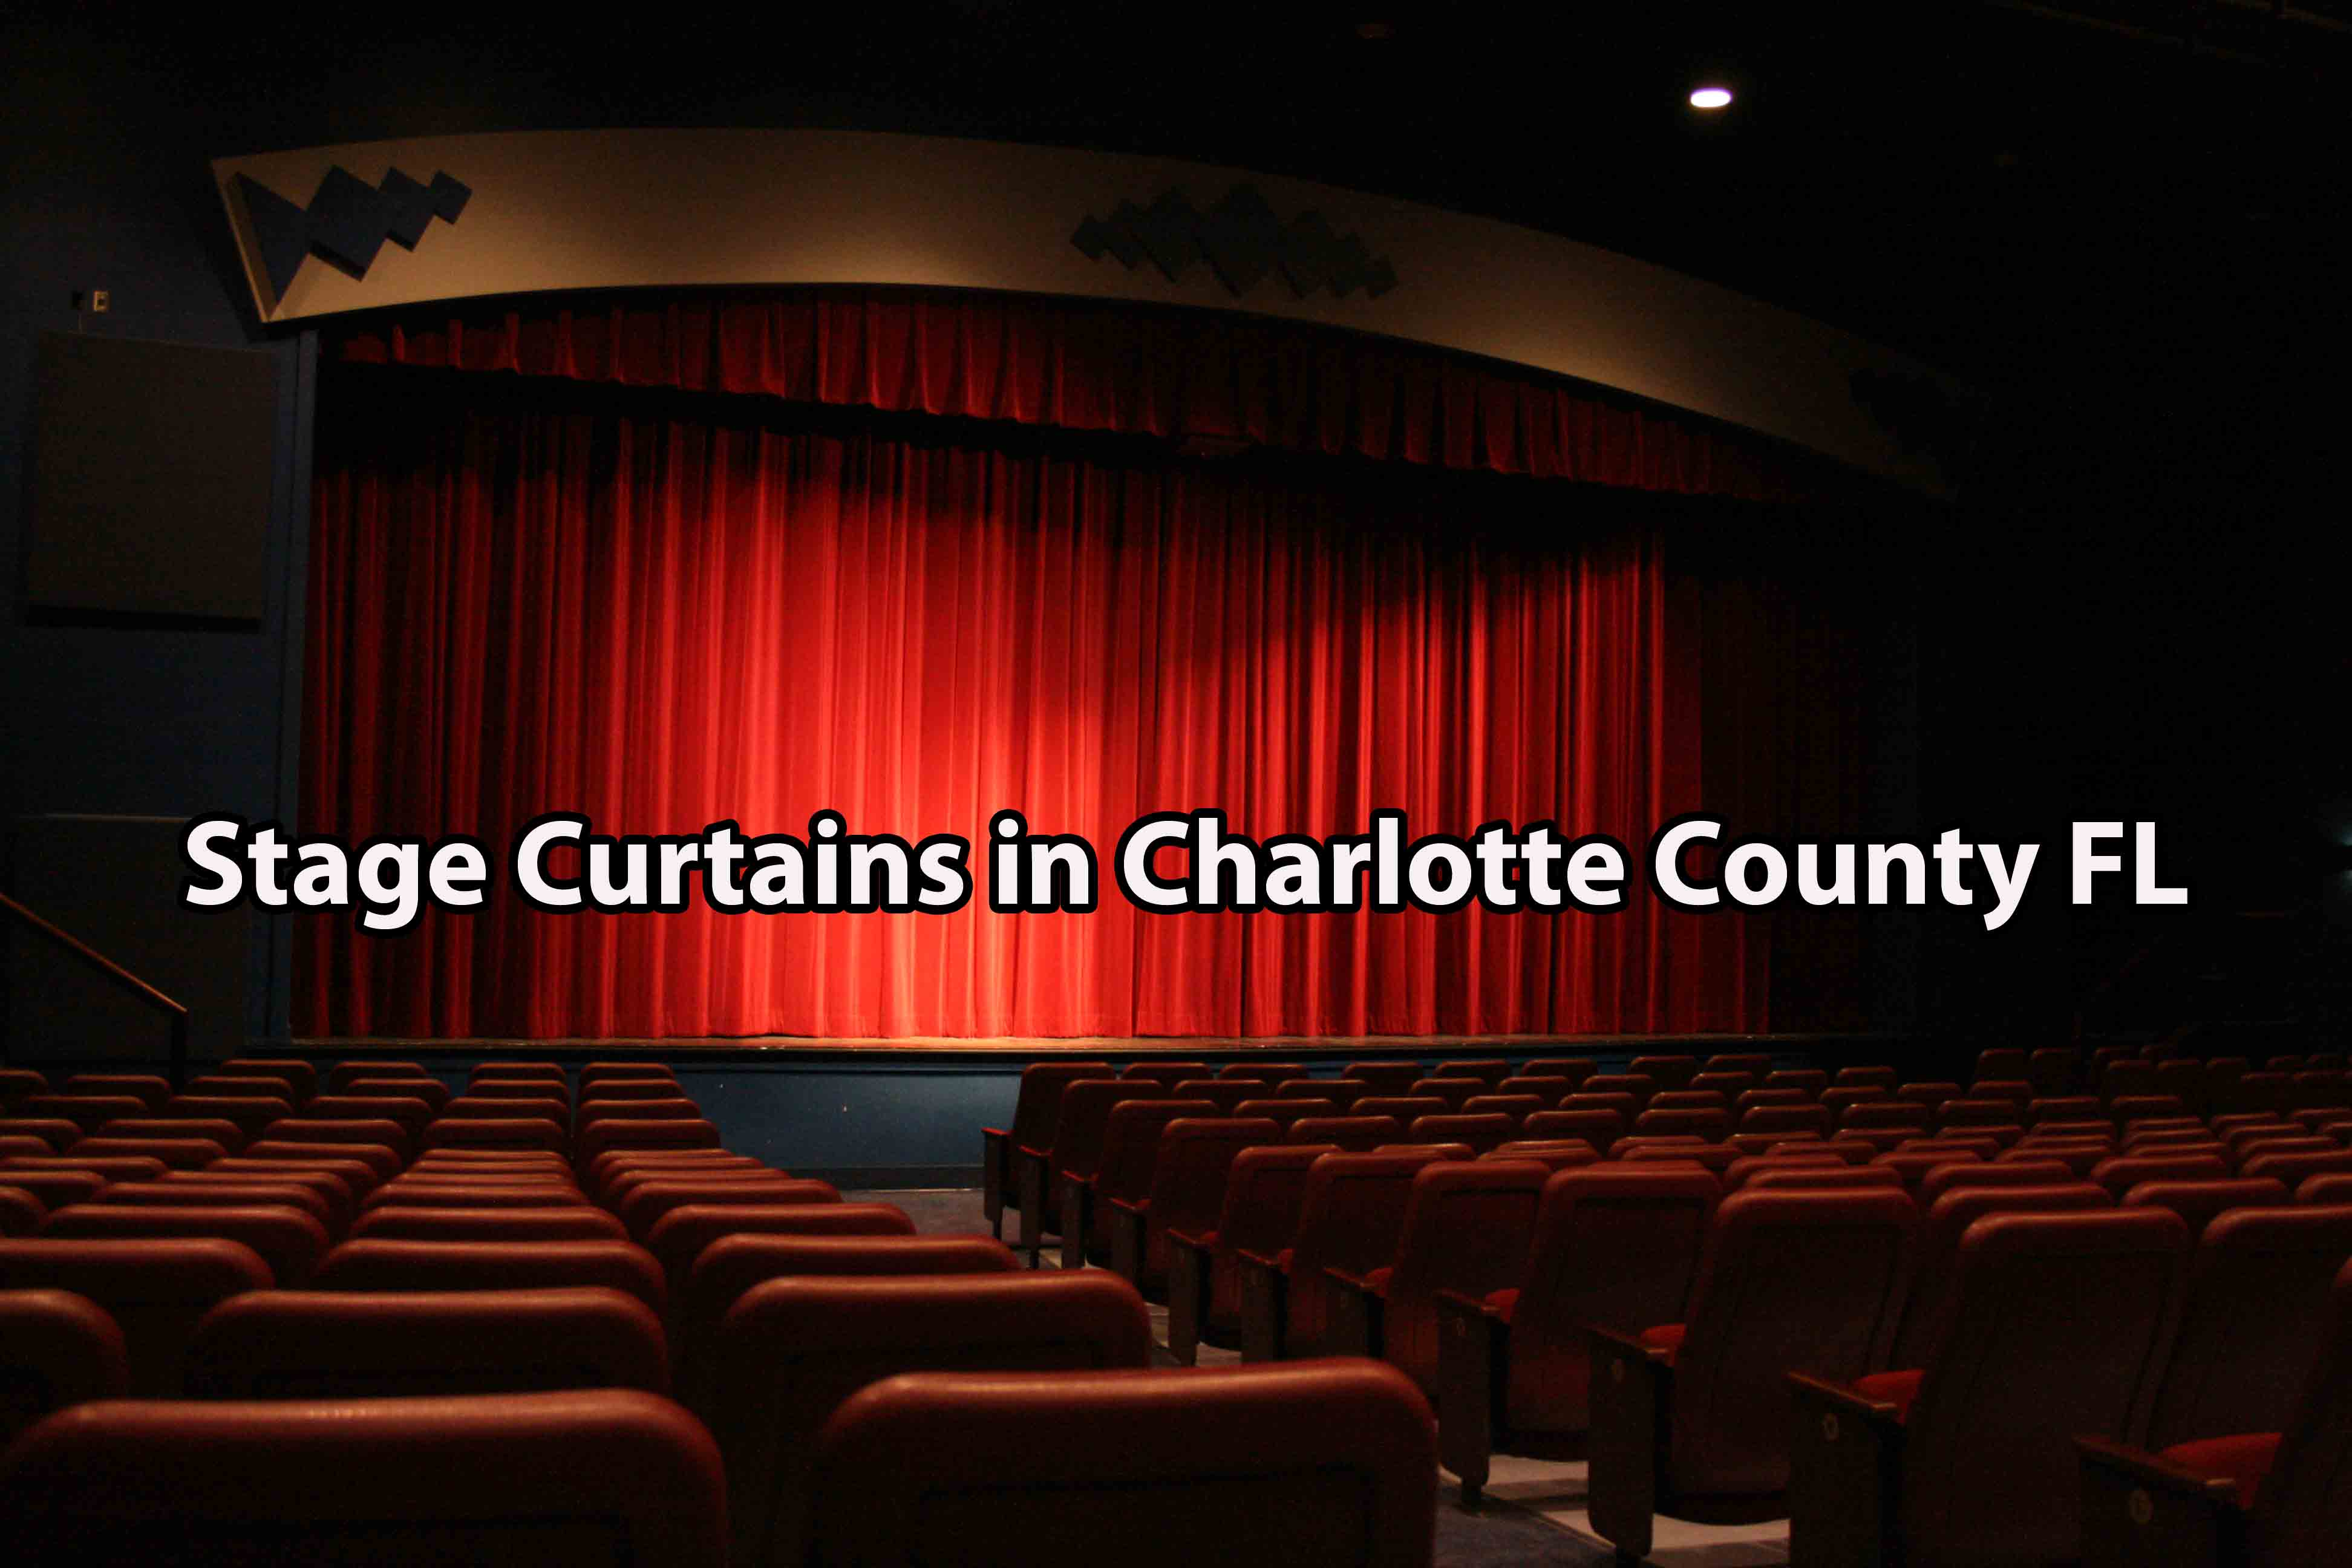 Stage Curtains in Charlotte County FL